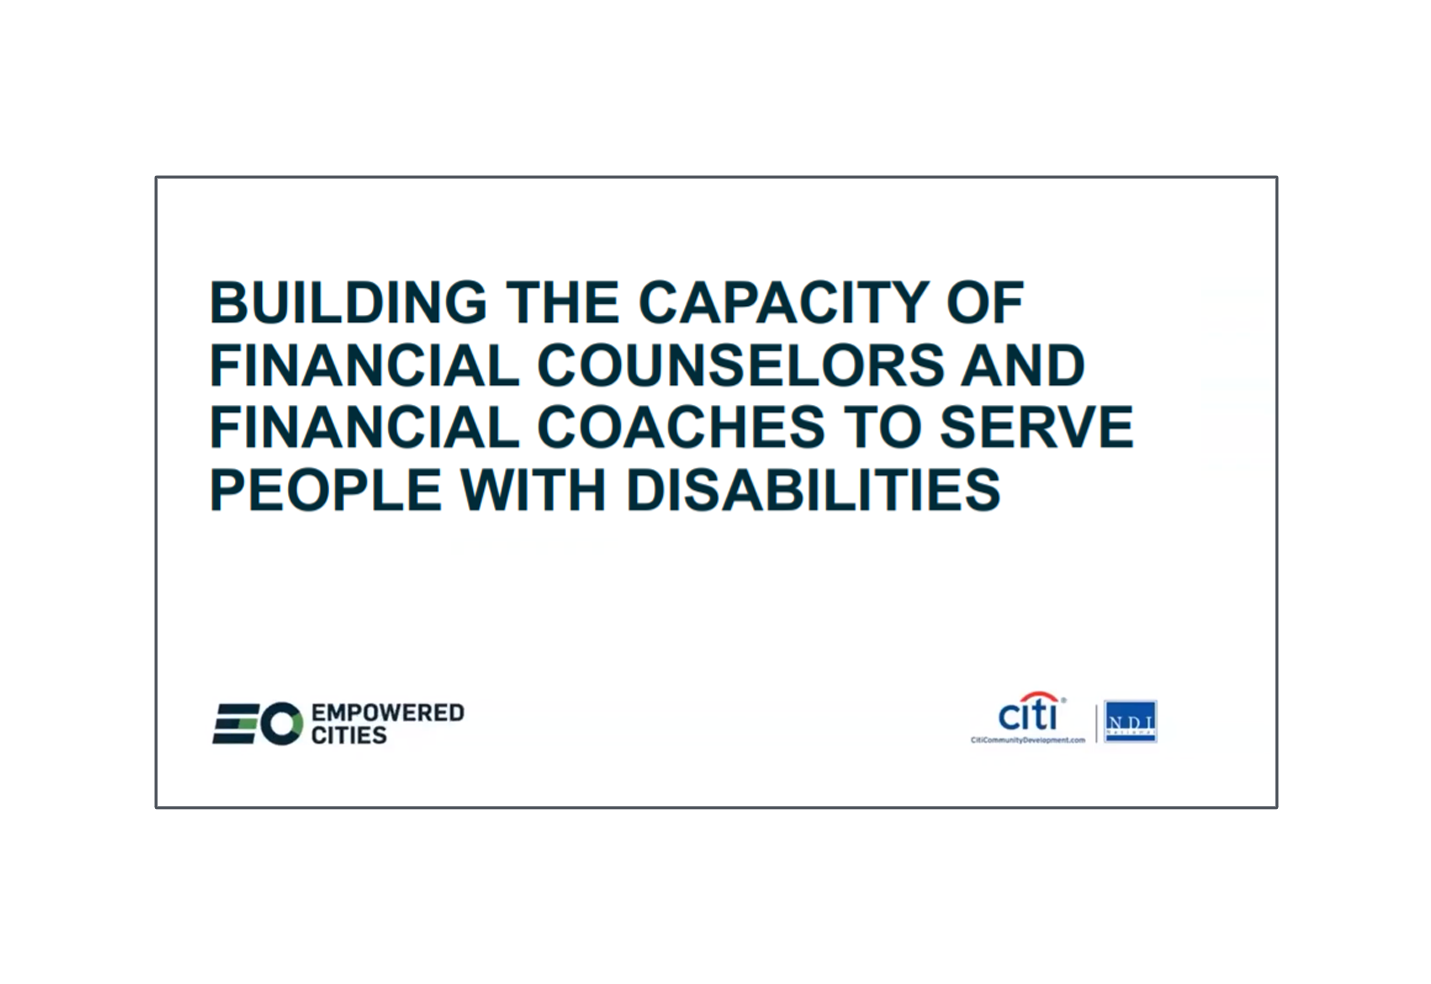 Building the Capacity of Financial Counselors and Financial Coaches to Serve People with Disabilities